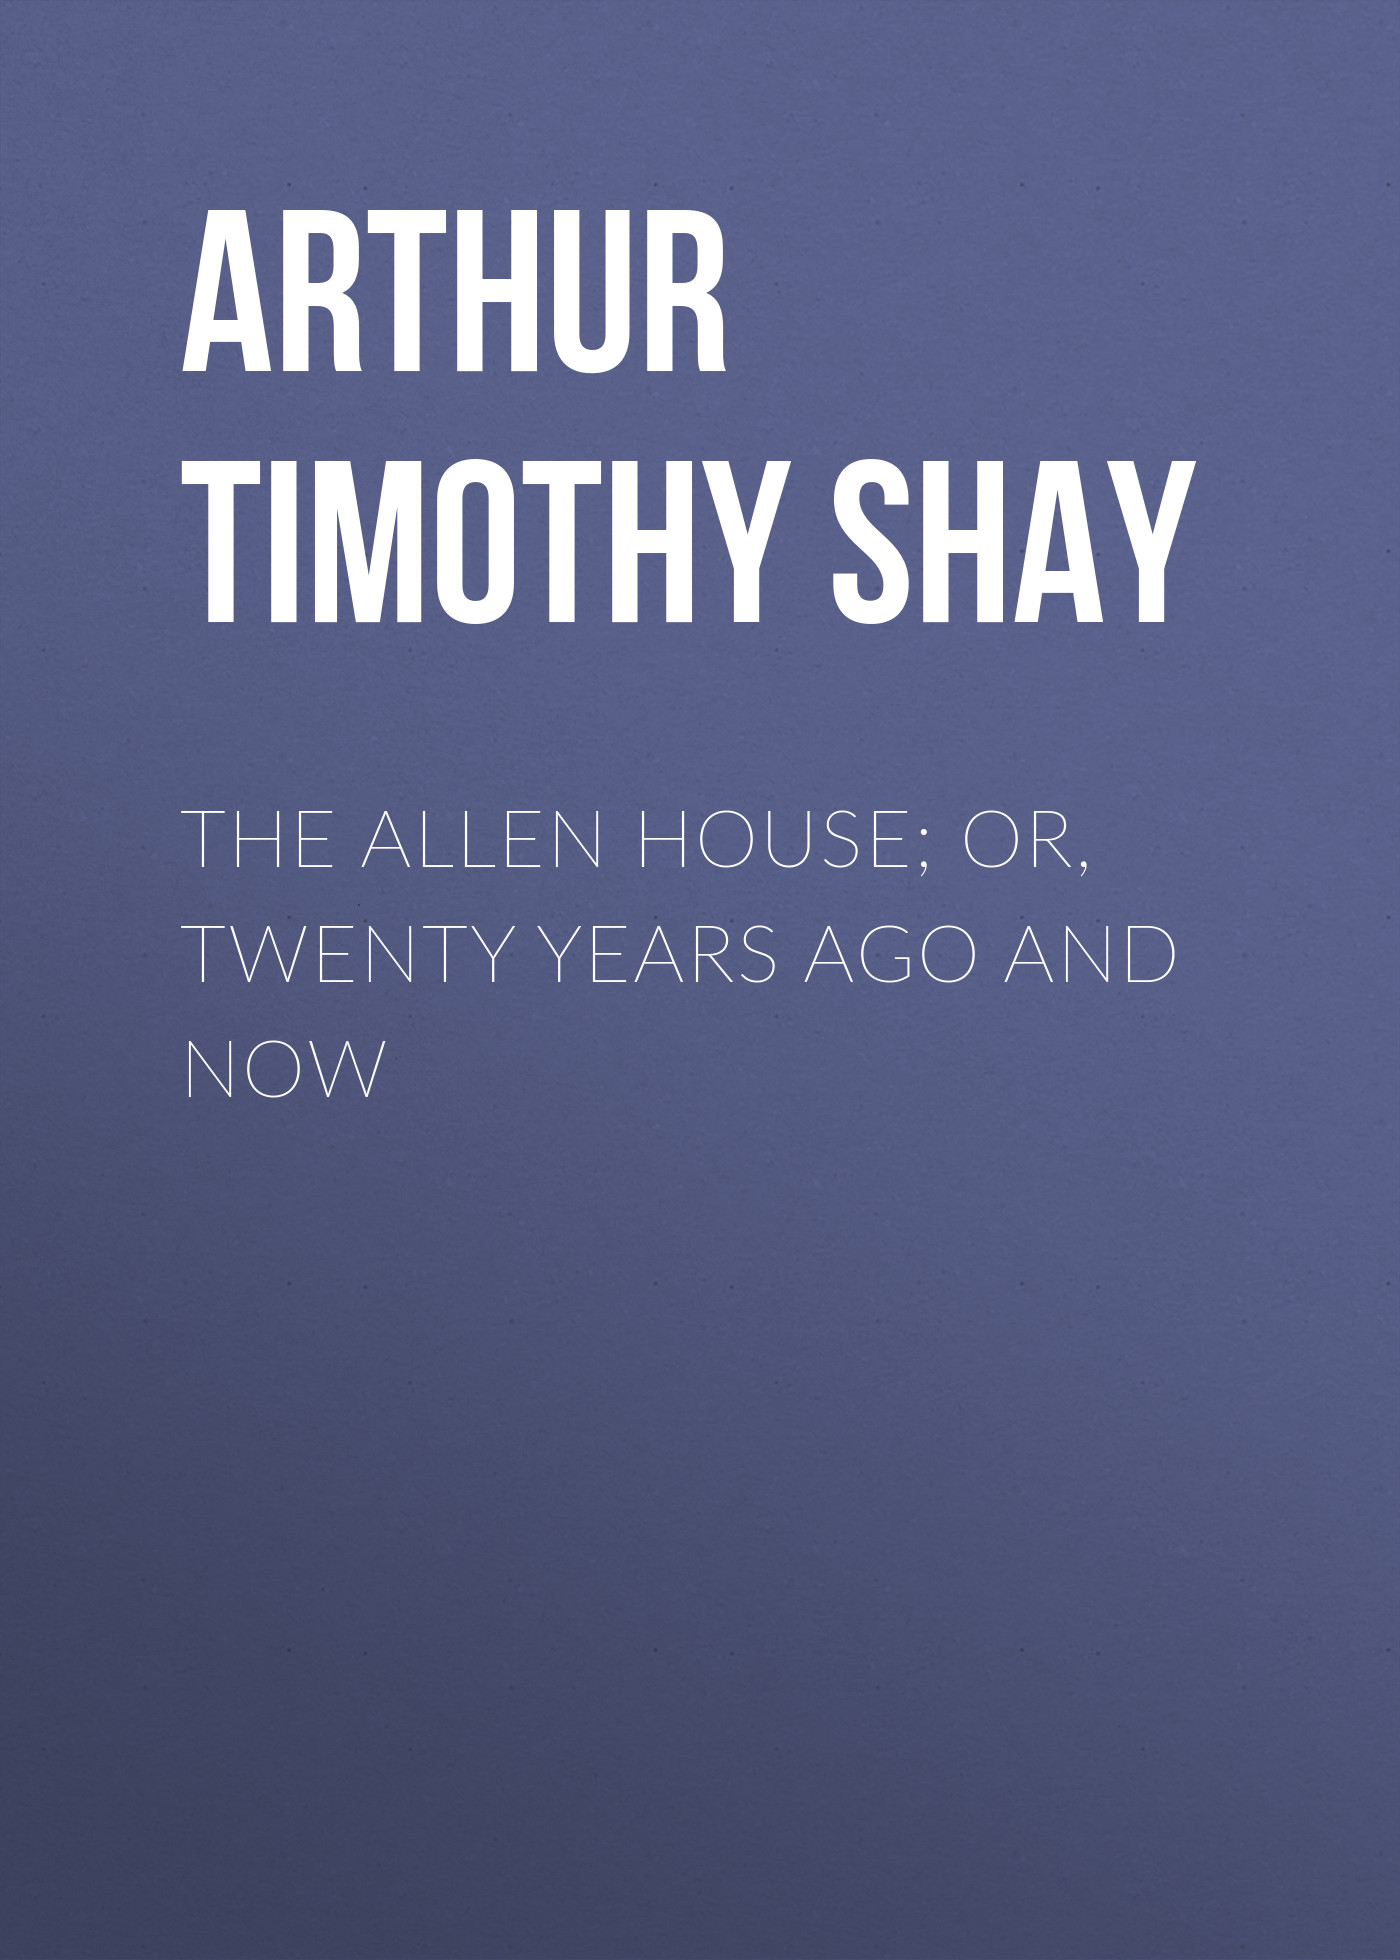 Arthur Timothy Shay The Allen House; Or, Twenty Years Ago and Now miami inc disco cell discotronix loona oscar sallguero glamrock brothers том маунтин nicco house maxx rudy mc hysterie twenty 4 seven the shrinkk reloaded sonic revolution dill g